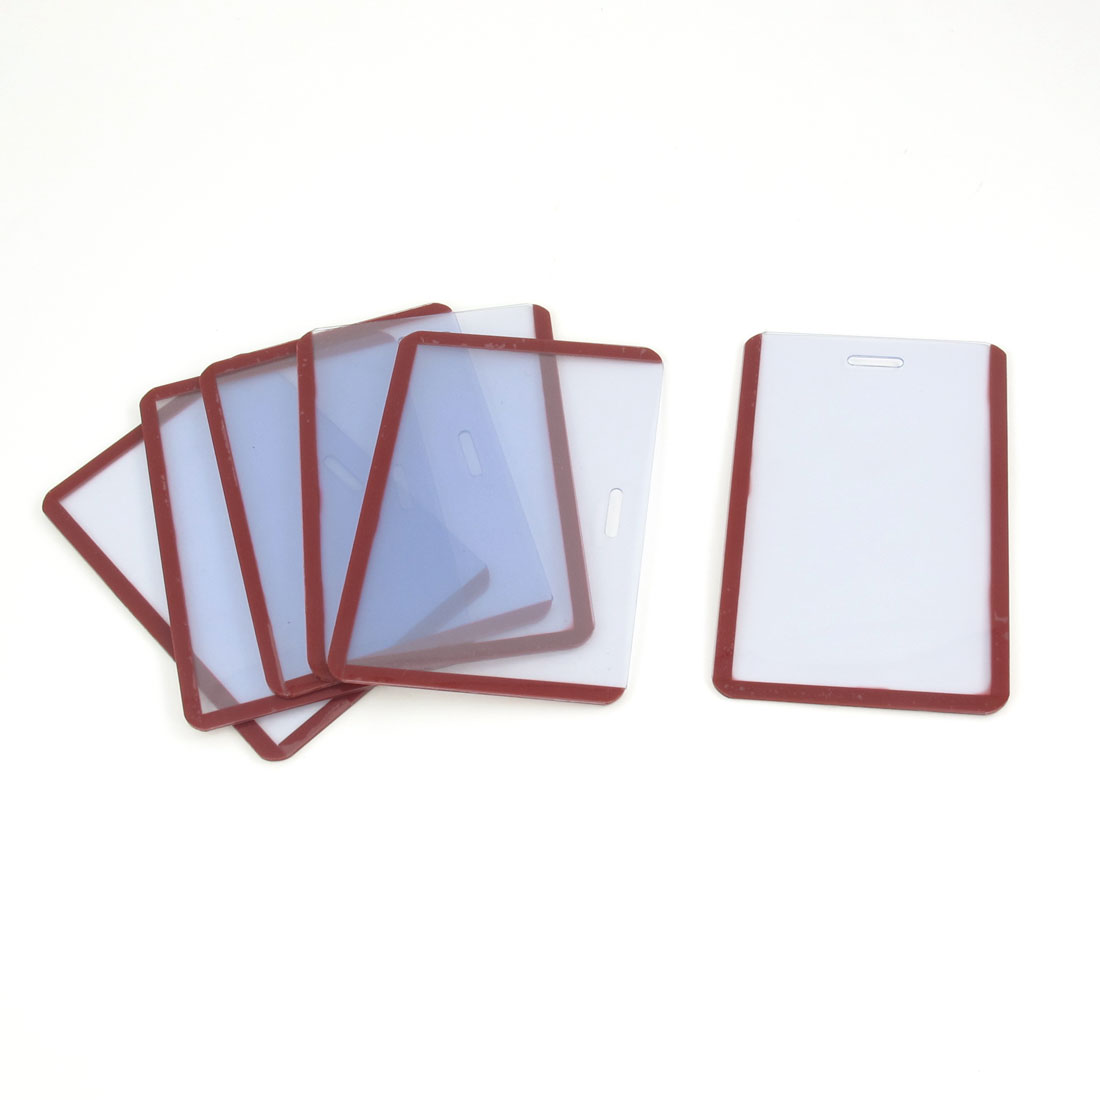 6 Pcs Clear Red Rim Soft Plastic Vertical B8 ID Card Guard Badge Holders